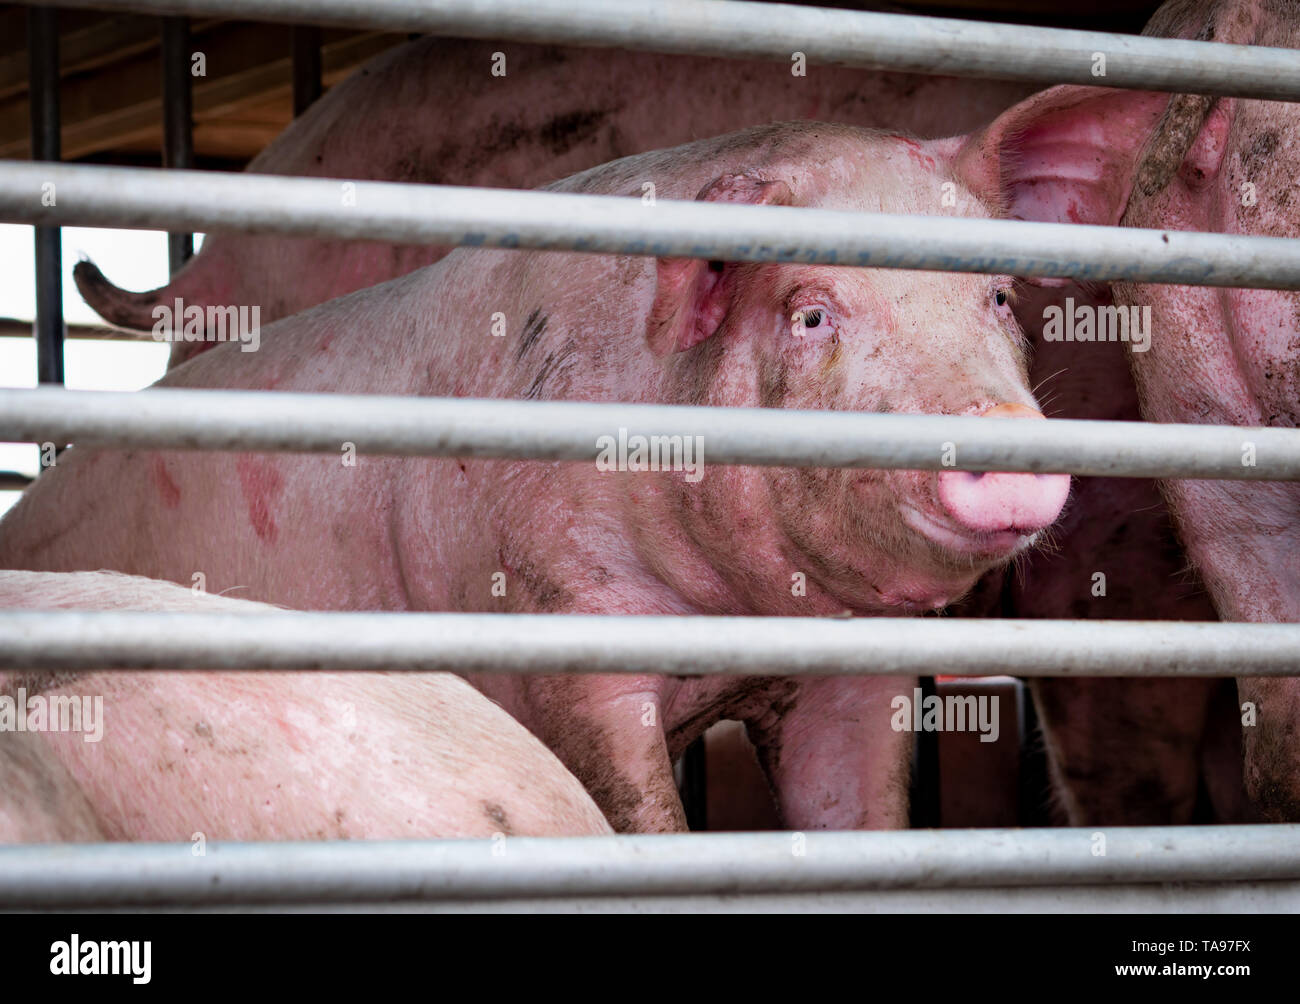 Pigs in truck transport from farm to slaughterhouse. Meat industry. Livestock. Animal meat market. Animals rights concept. Pig suffering and cruelty - Stock Image